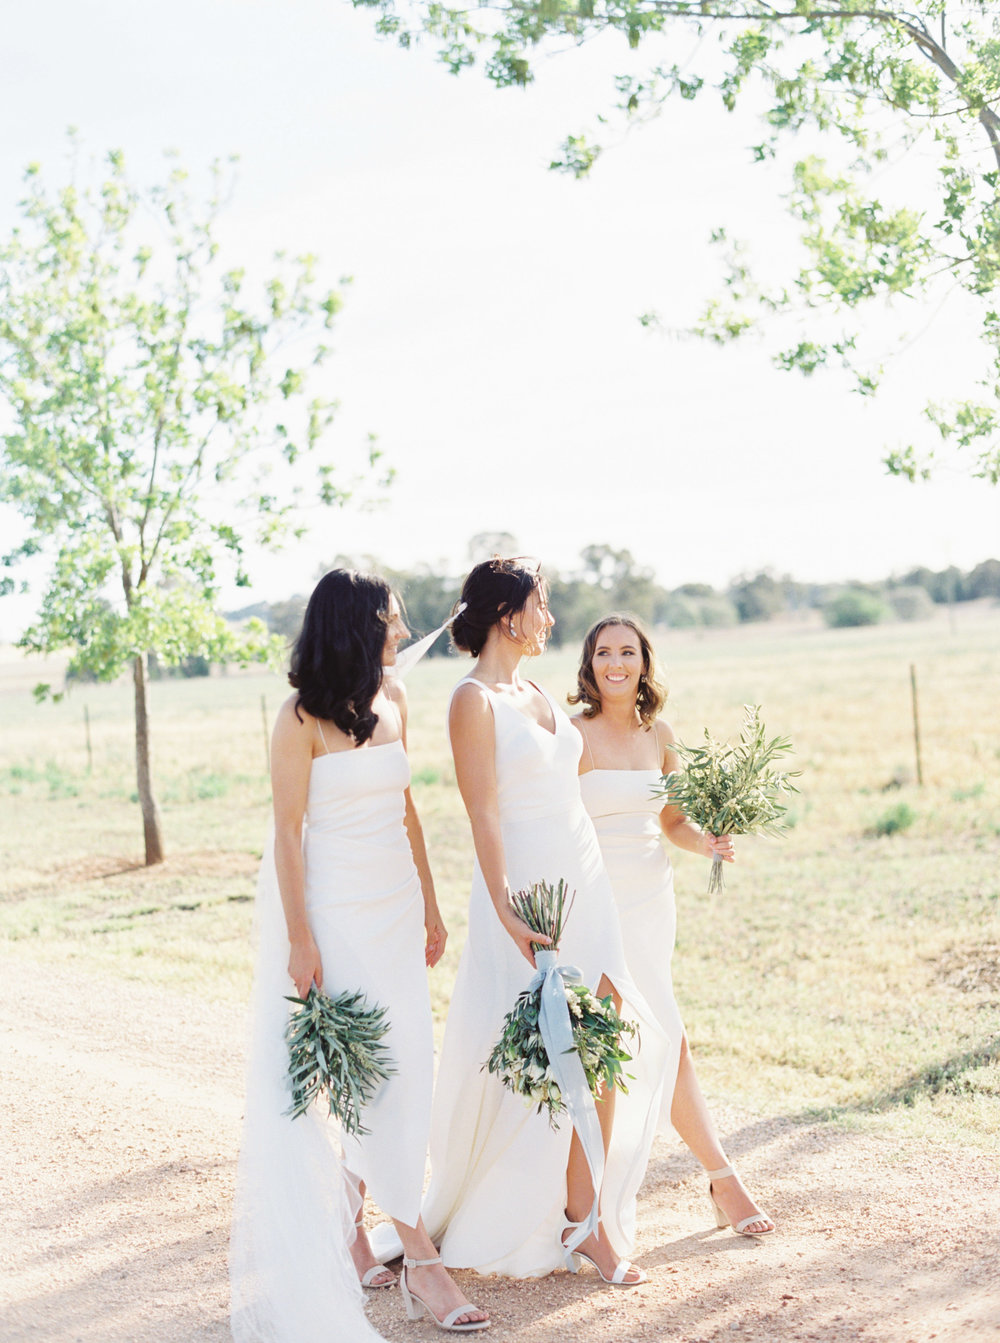 00056- Olive Tree Mediterranean Wedding in Mudgee NSW Australia Fine Art Film Wedding Lifestyle Photographer Sheri McMahon_.jpg